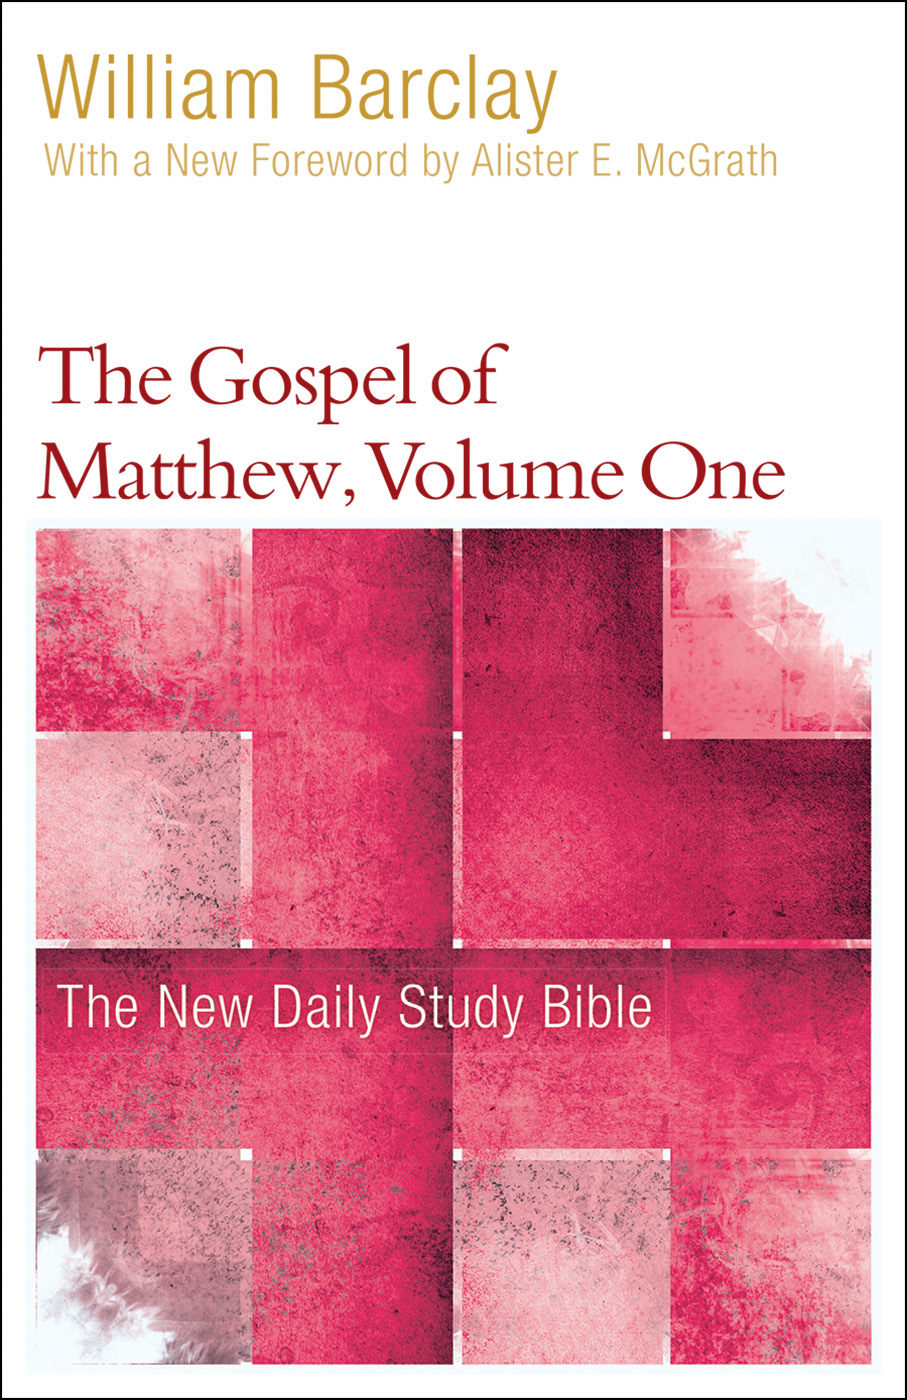 The Gospel of Matthew, Volume One